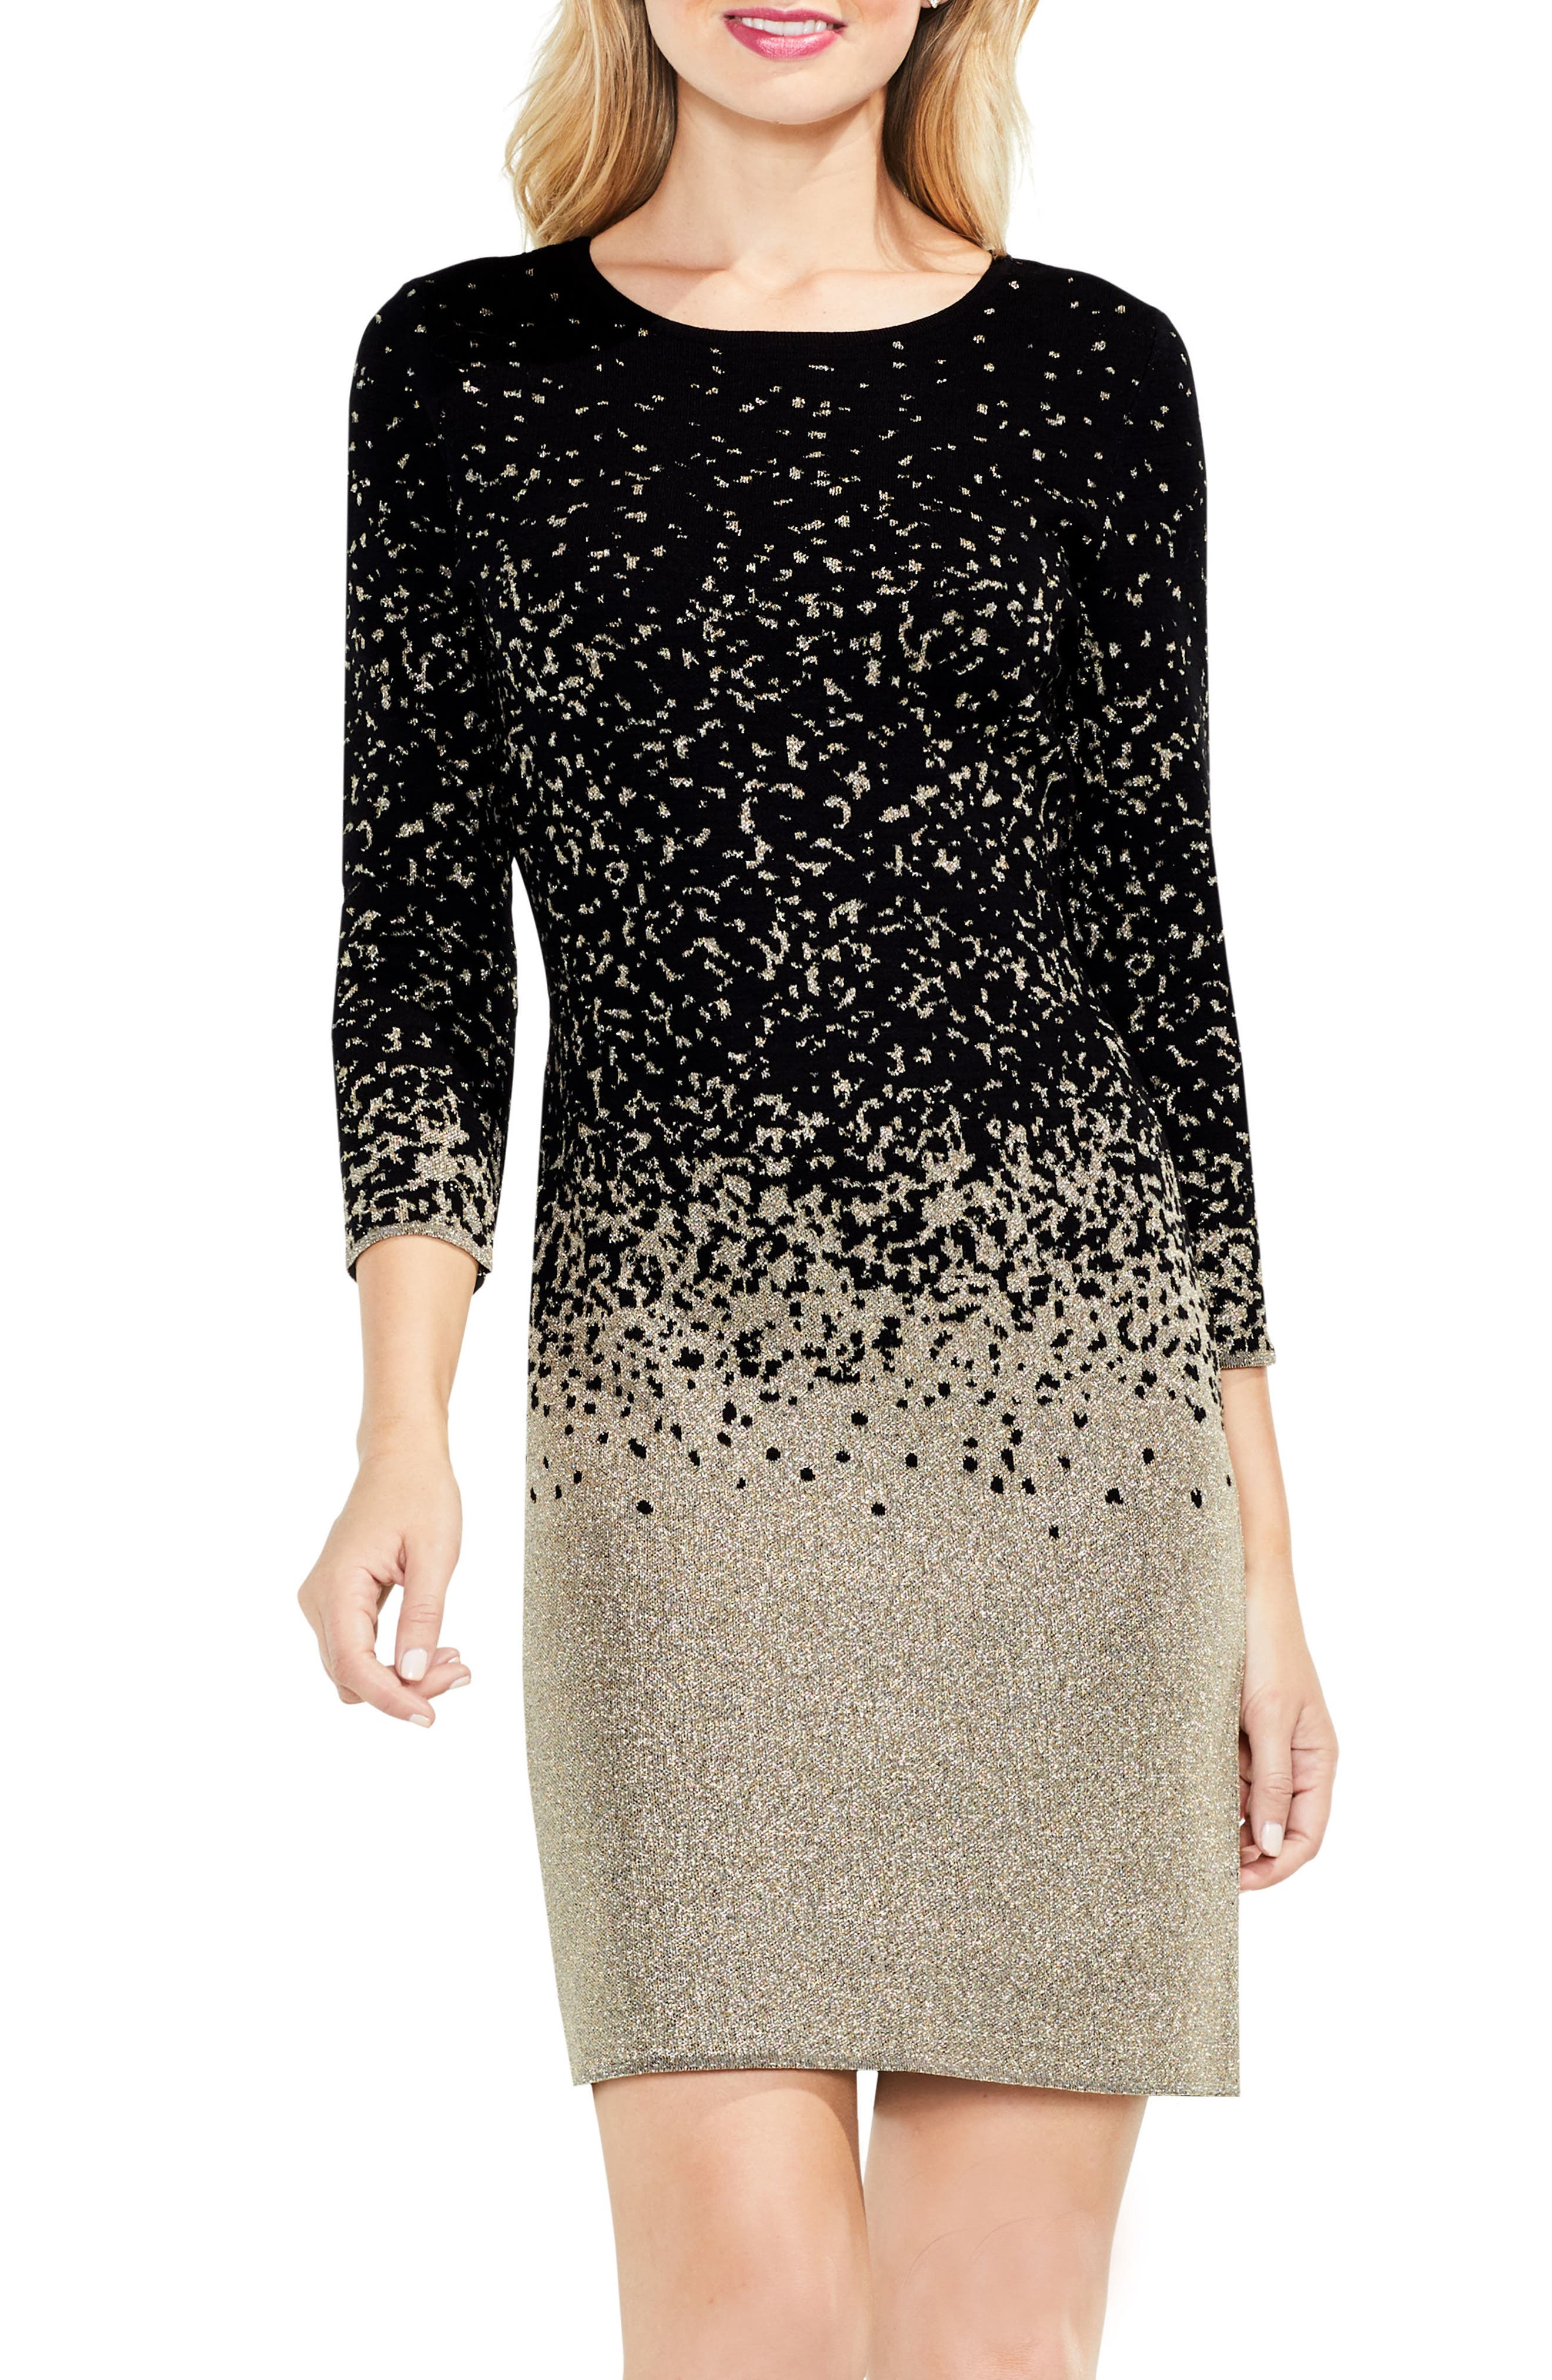 Alternate Image 1 Selected - Vince Camuto Metallic Ombrè Sweater Dress